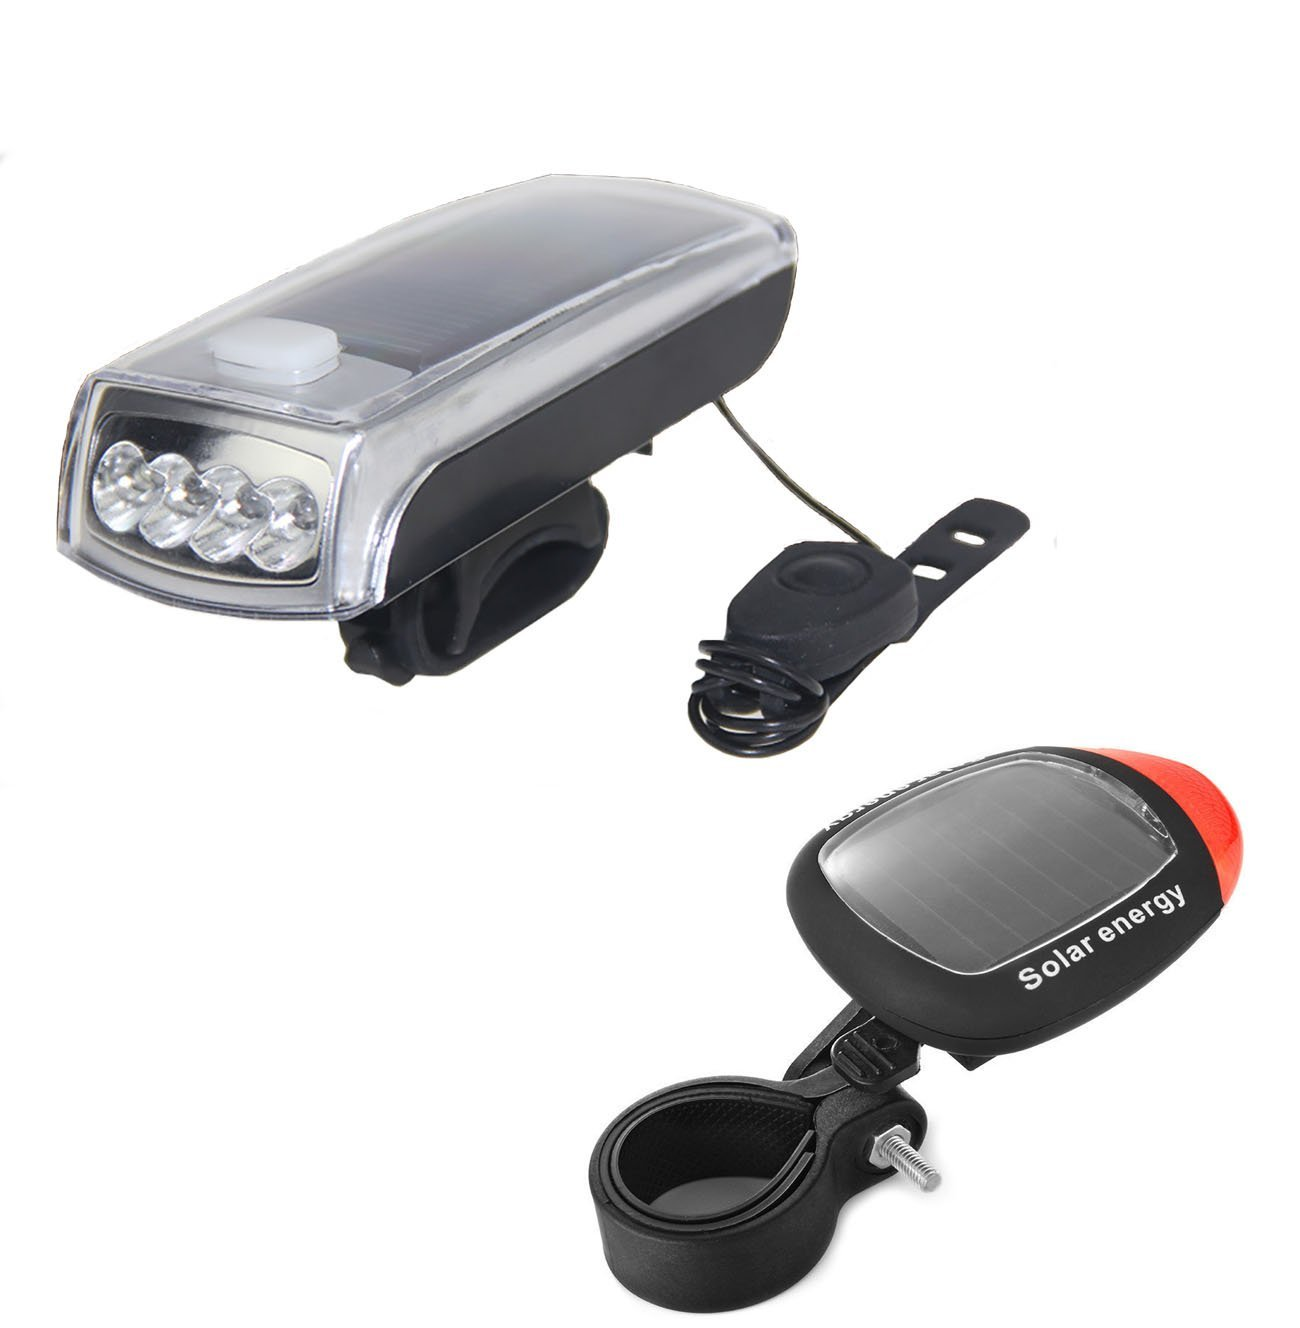 Ultra Bright Bicycle Lights Set - Front Headlights & Horn & Back Taillights, Two(Solar and USB)-in-One Rechargeable LED Bike Front Lights, Waterproof & Safety Road, 1200mAH/1200 Lumens Head Lights.